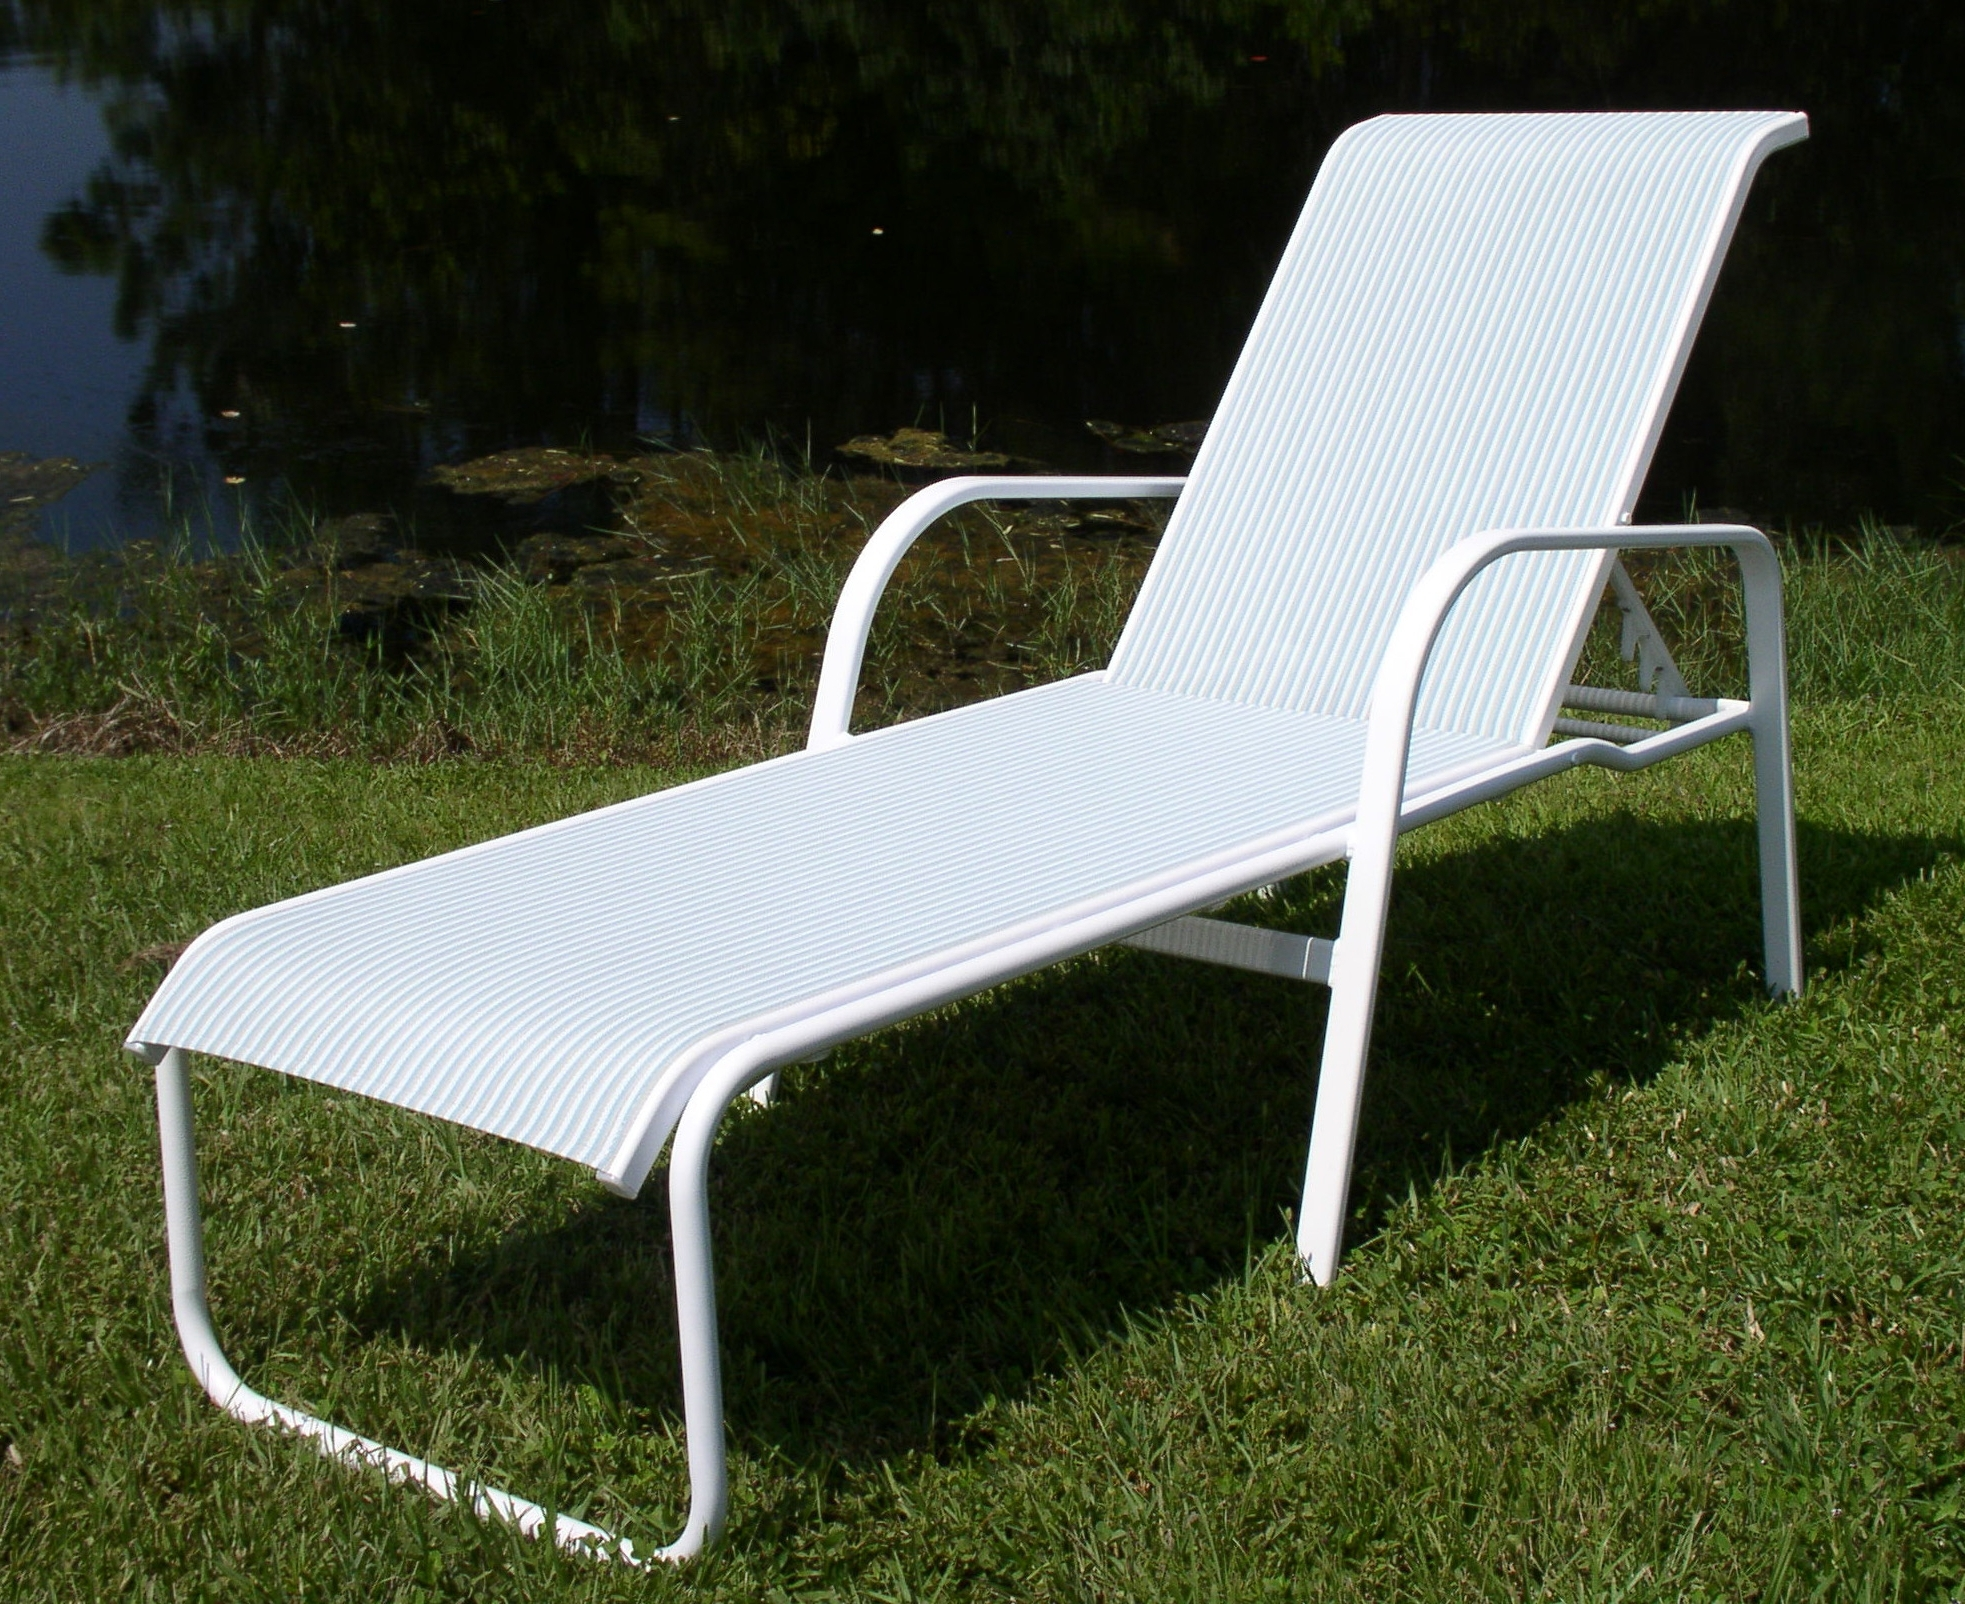 Widely Used Chaise Lounge Lawn Chairs Pertaining To Lawn Furniture Lounge Chairs • Lounge Chairs Ideas (View 13 of 15)